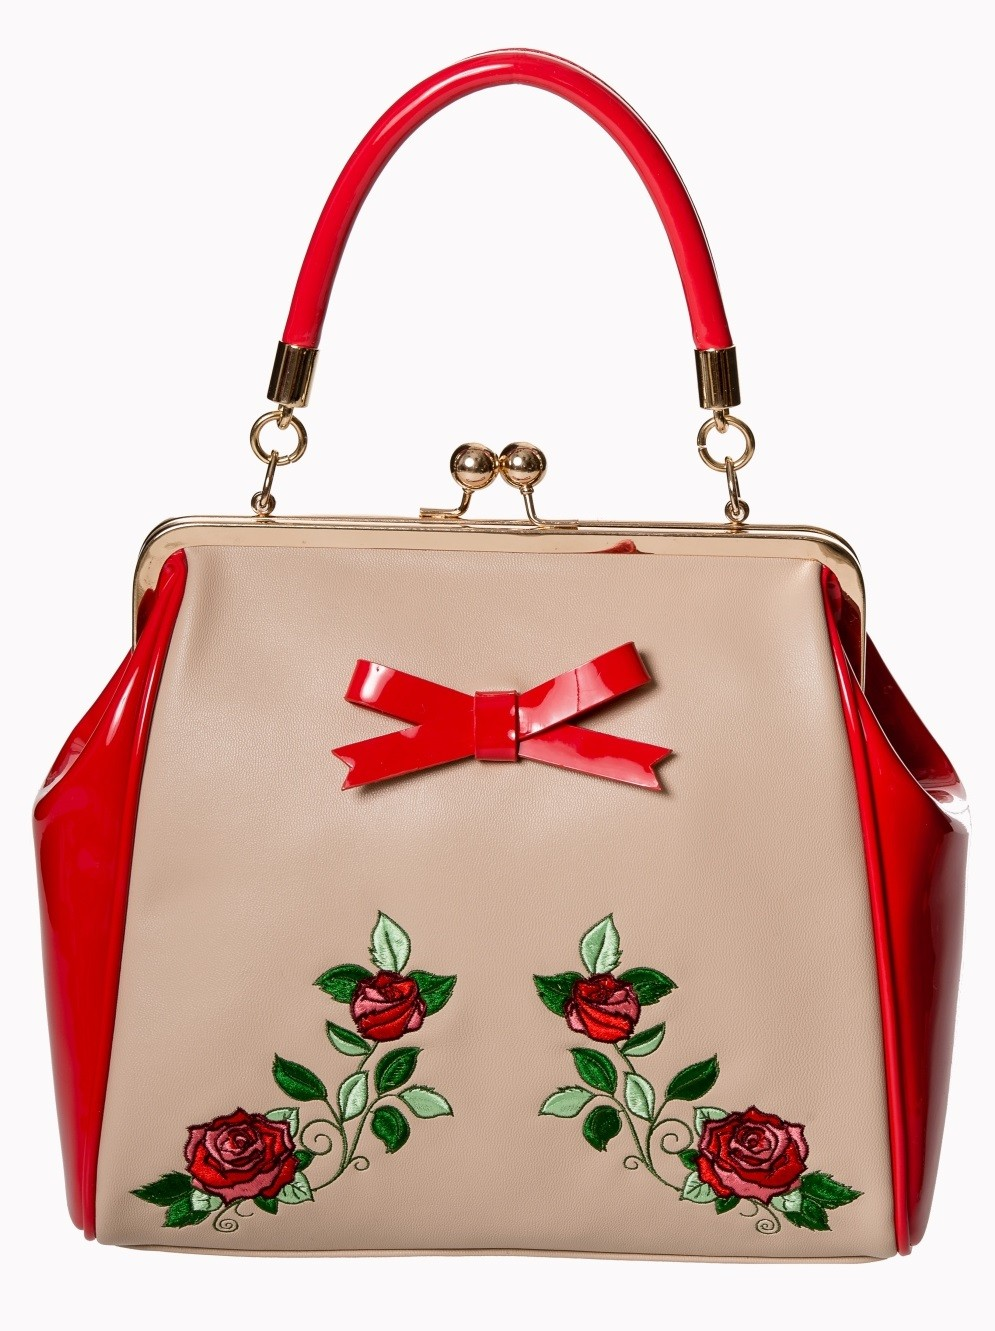 Banned Apparel Fantasy in Red - Taupe Bag